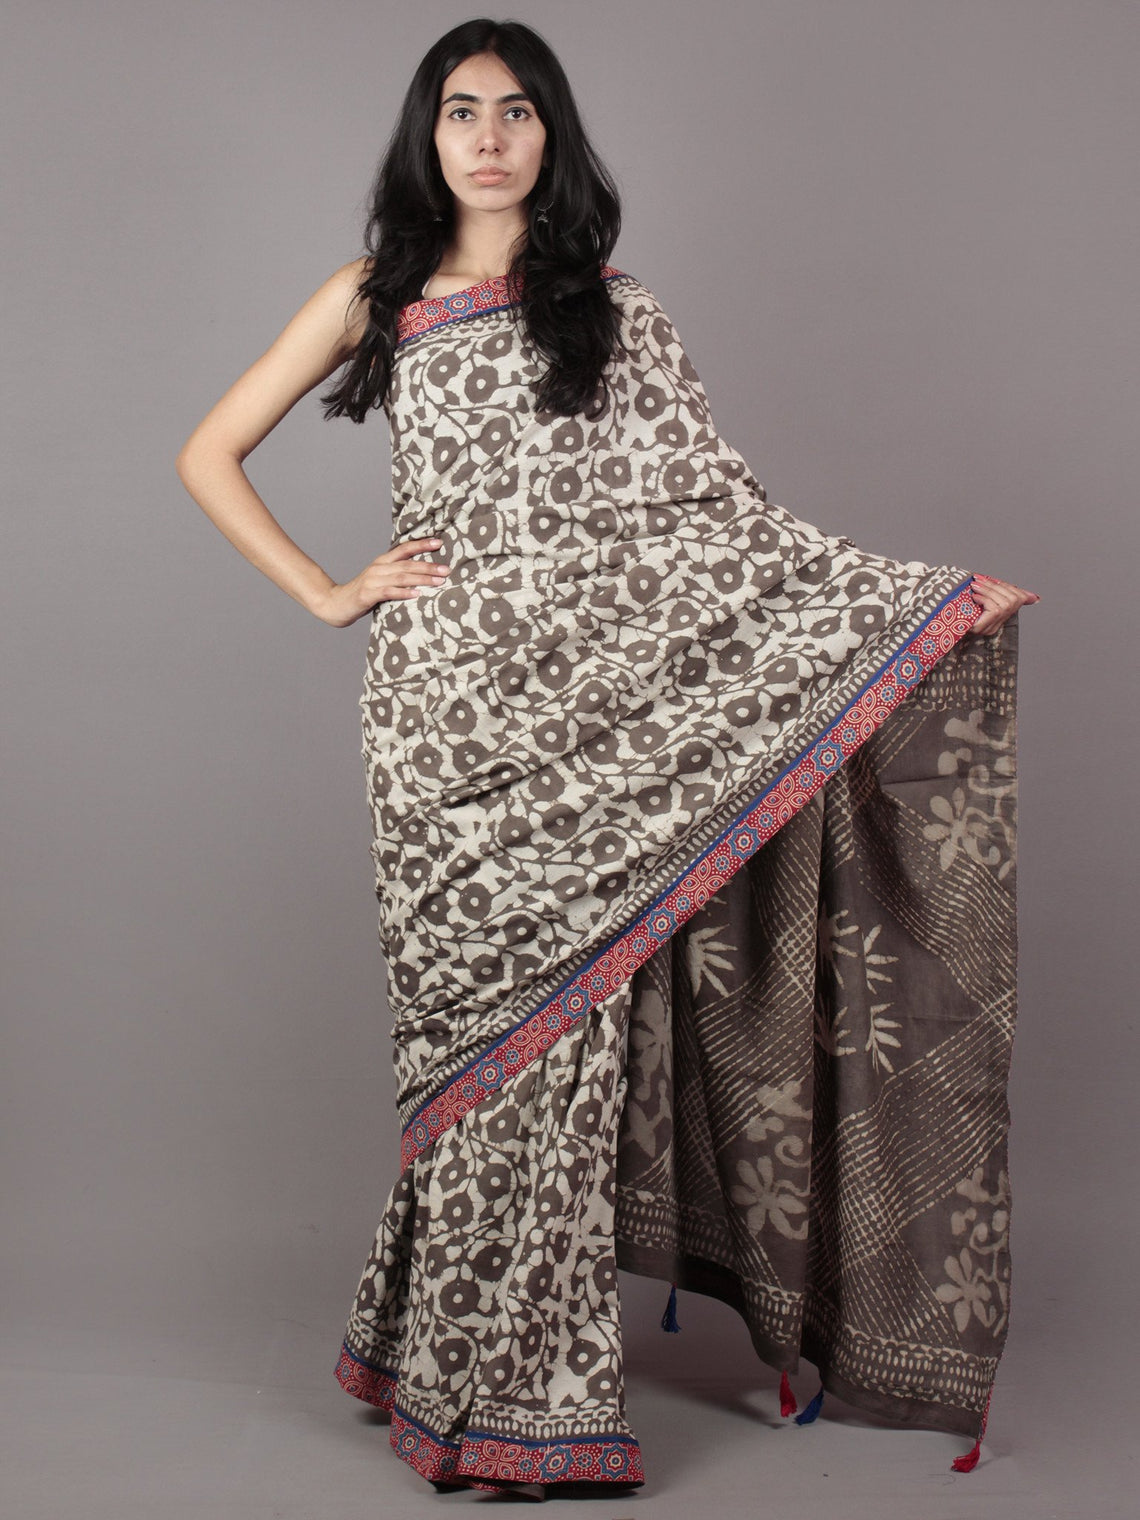 Kashish Ivory Hand Block Printed Cotton Saree With Ajrakh Printed Border & Tassels - S031701876